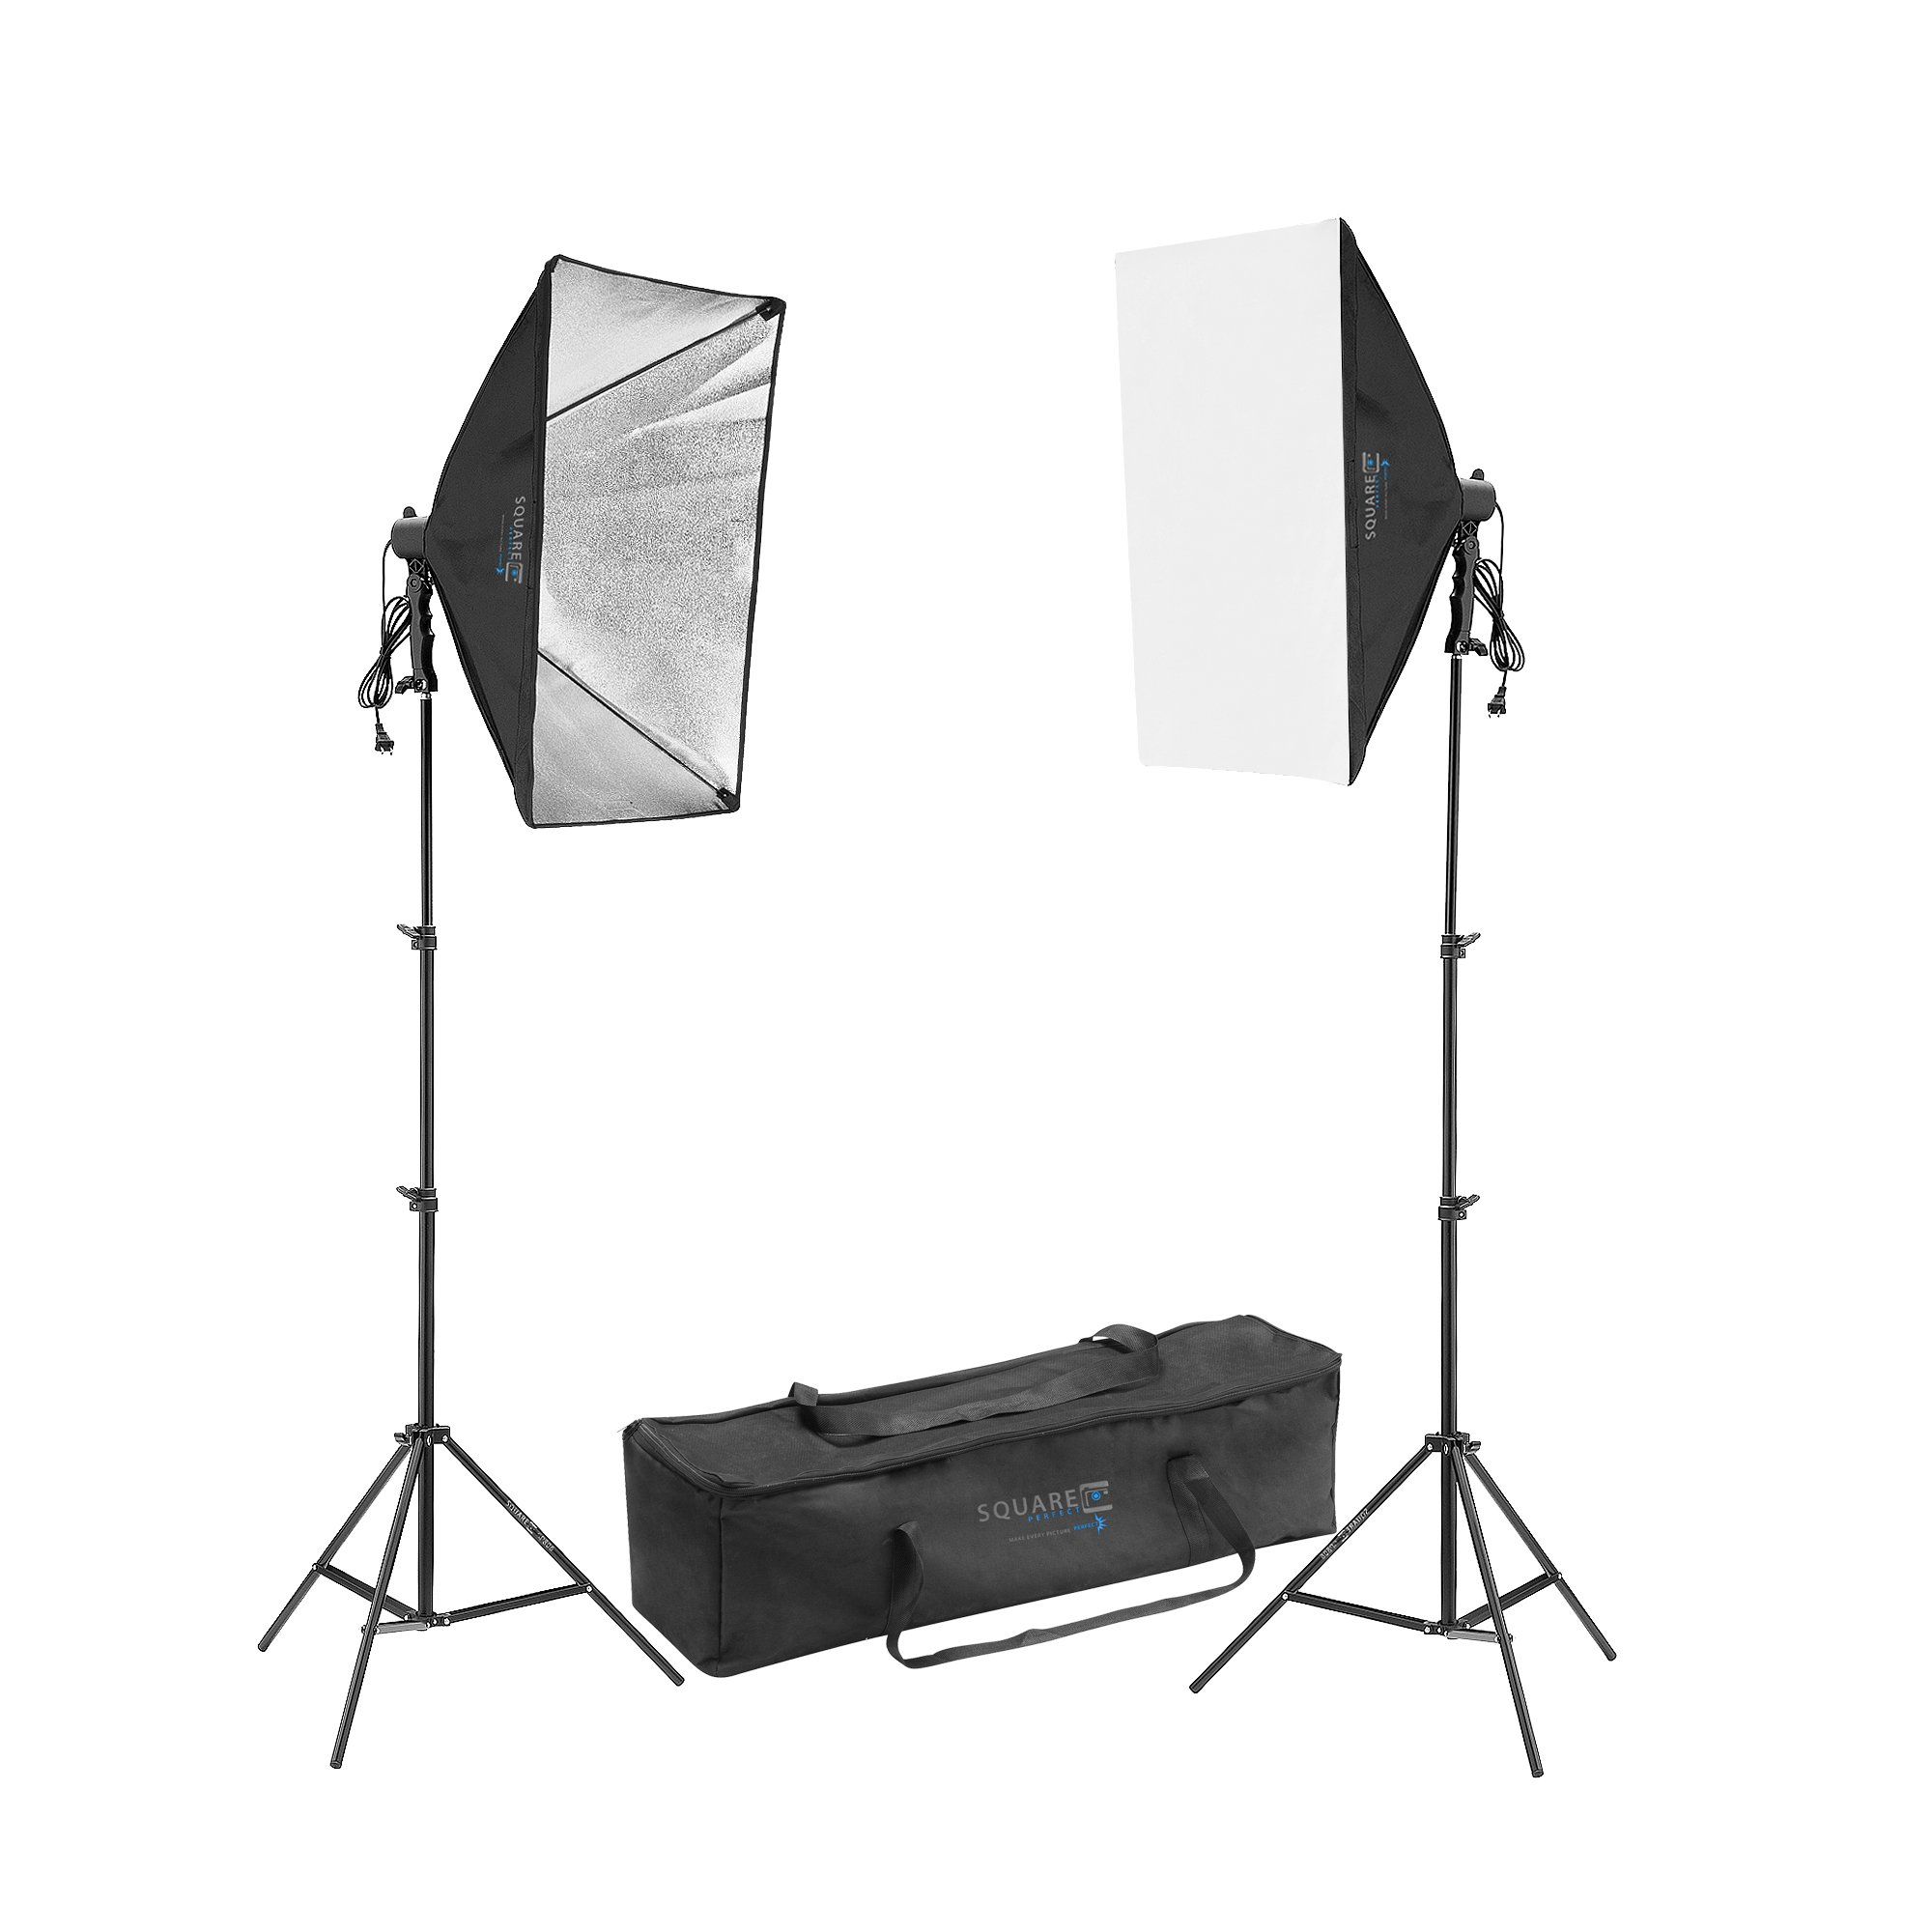 LED Photography Light Set Digital Video Continuous Light Kit 16 Watt LED by SQUARE PERFECT